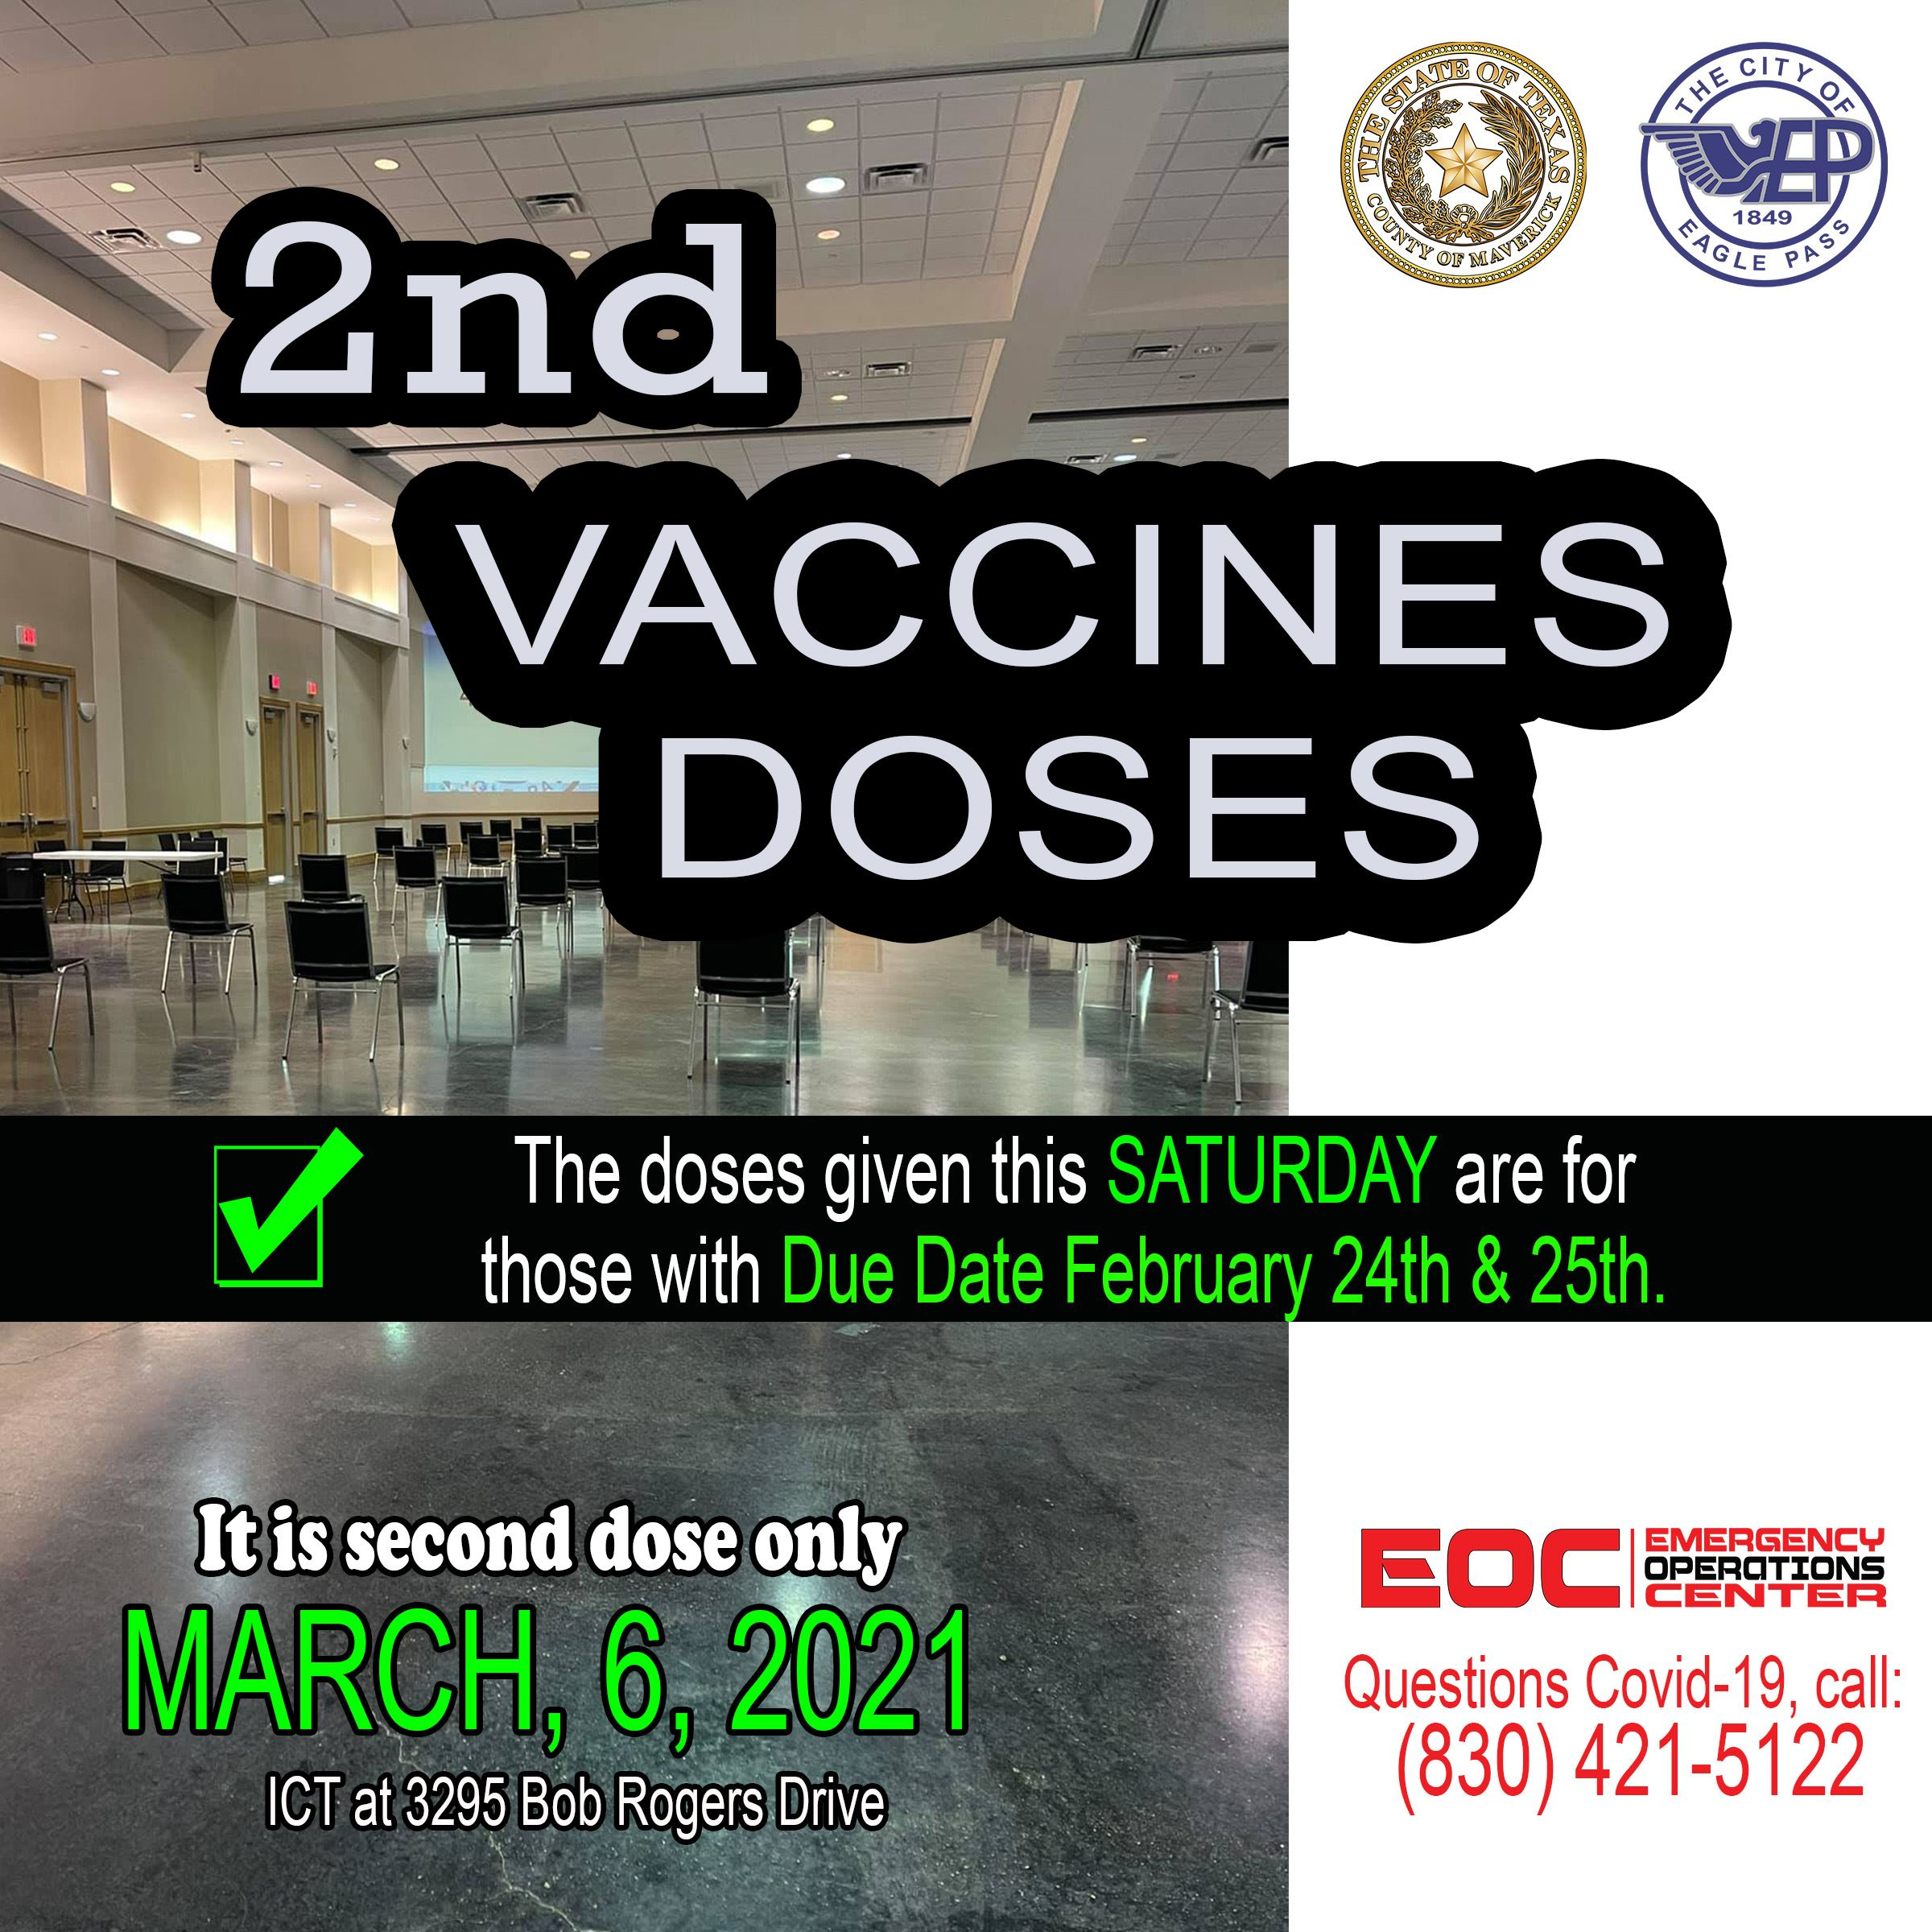 vaccines 2nd doses MARCH 6 1.0